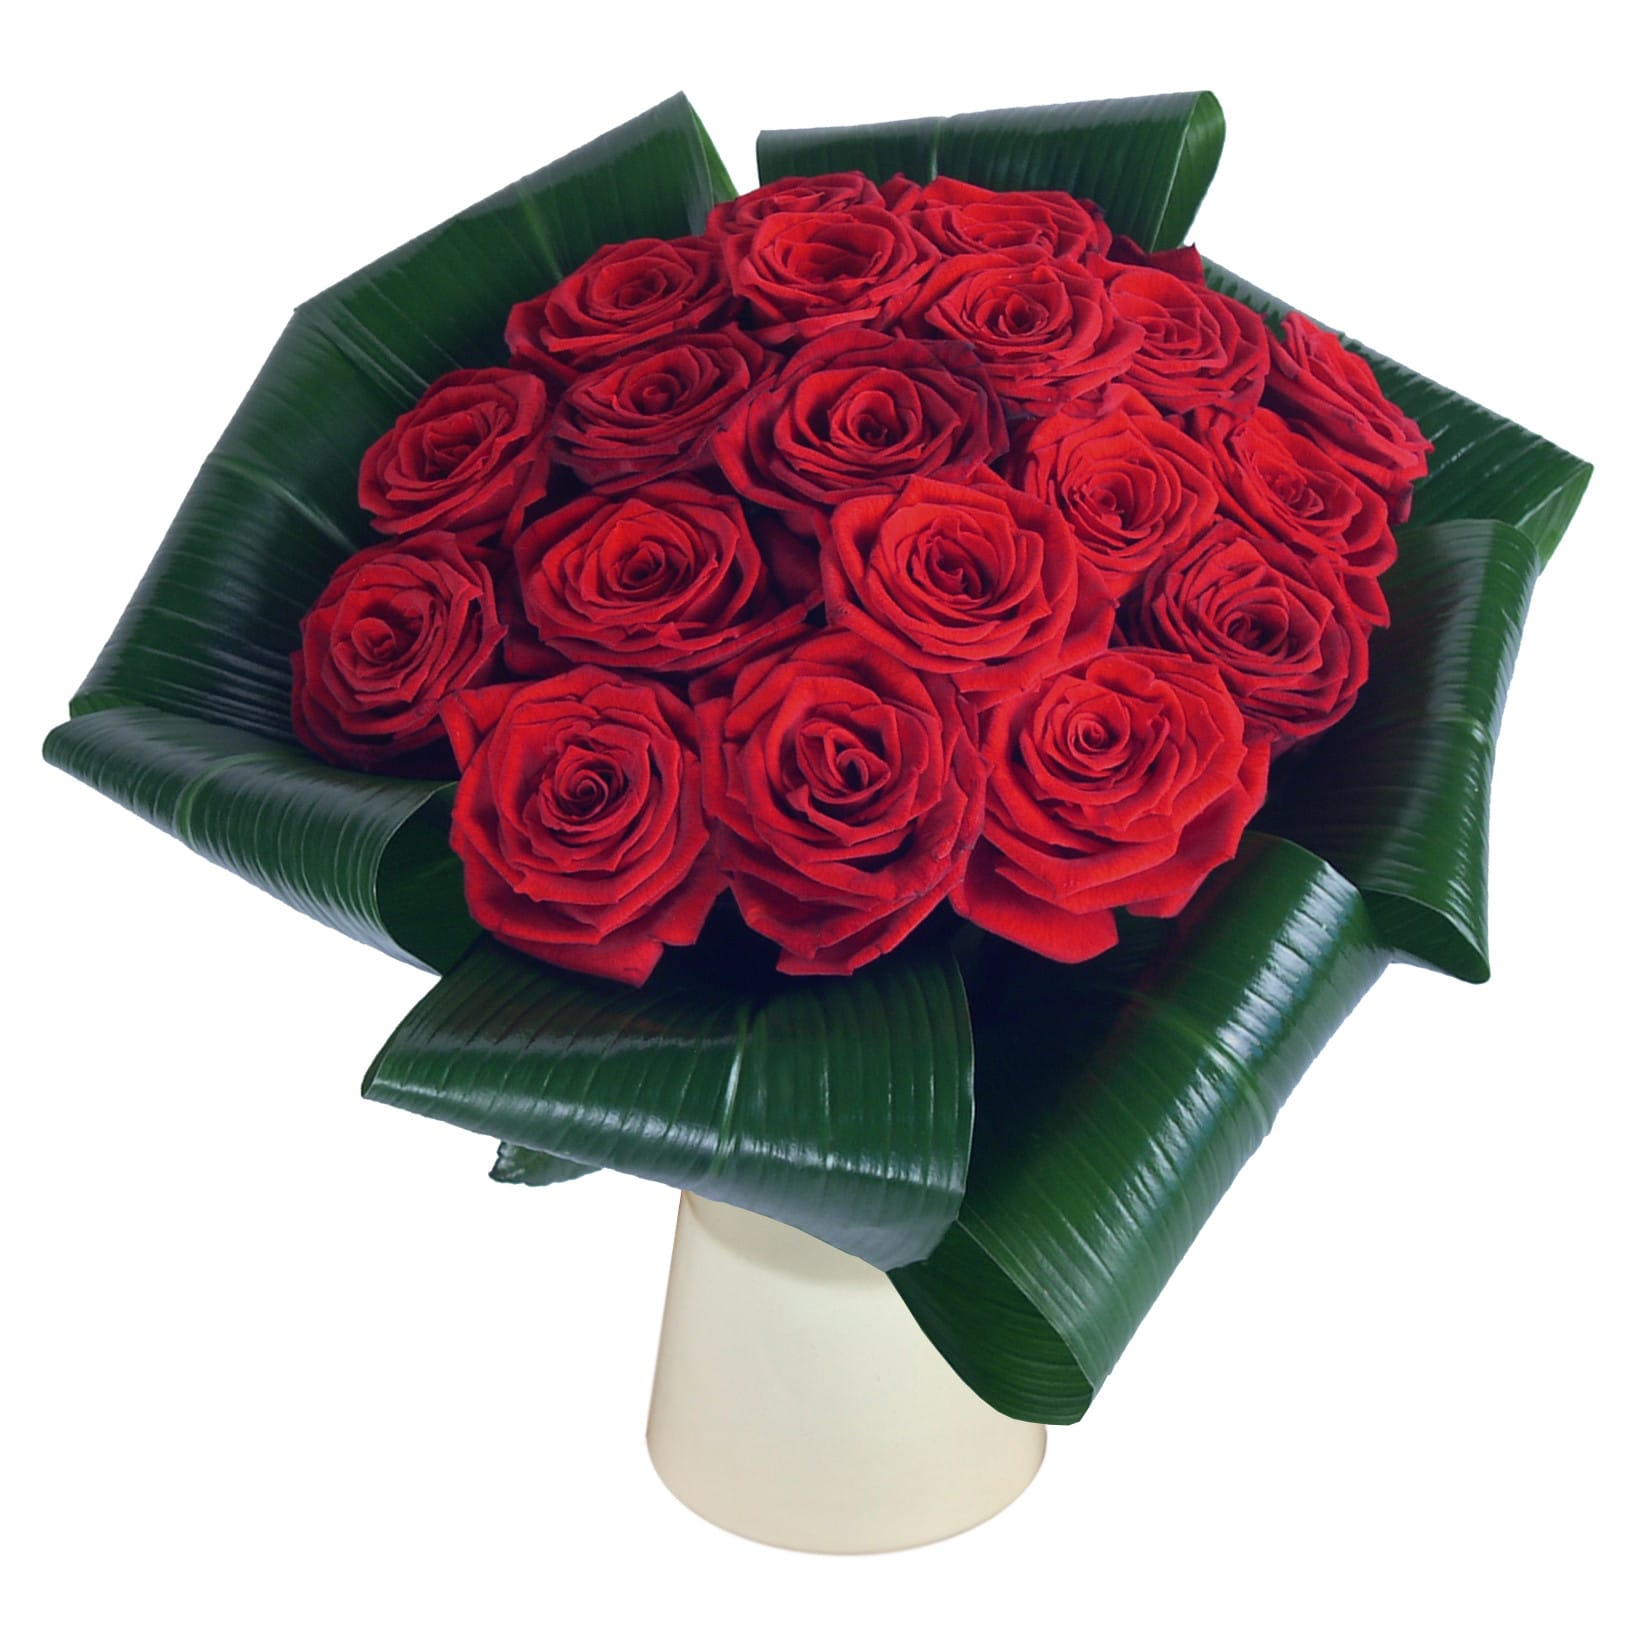 Love - 20 Red Roses half price special offer on subscriptions.